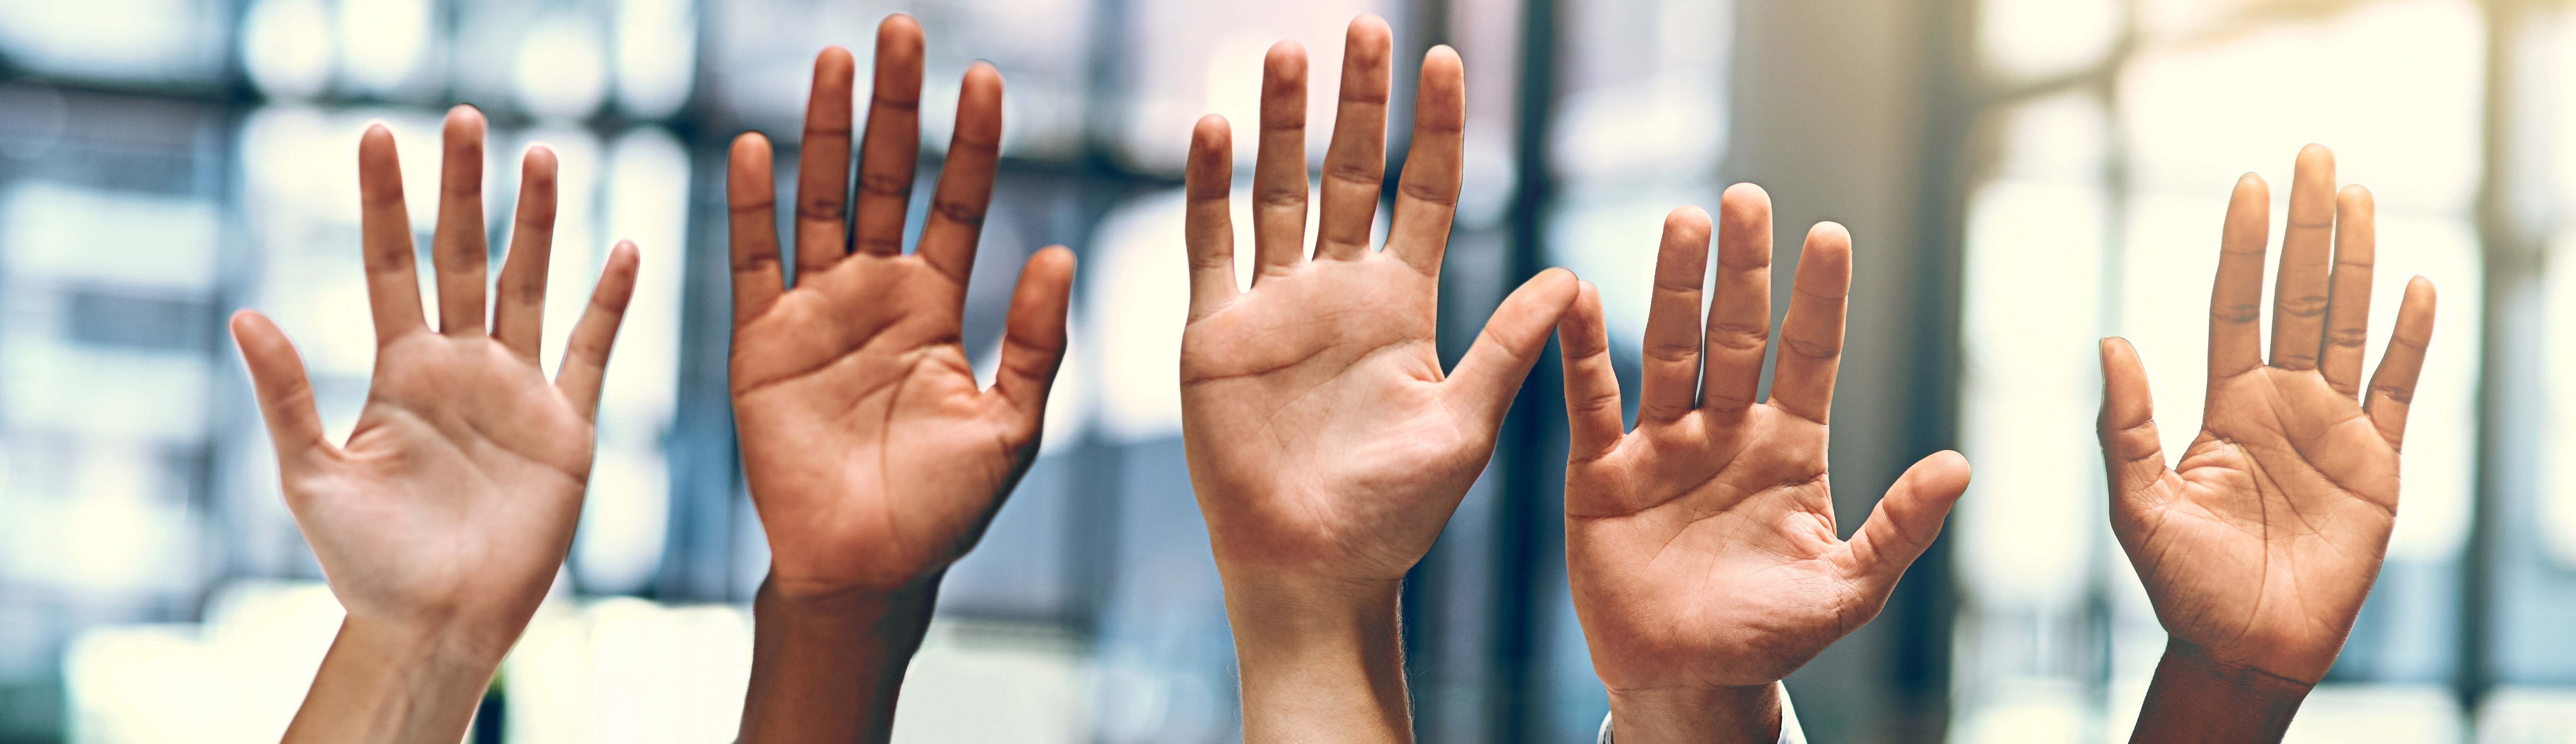 Five hands raised to ask questions